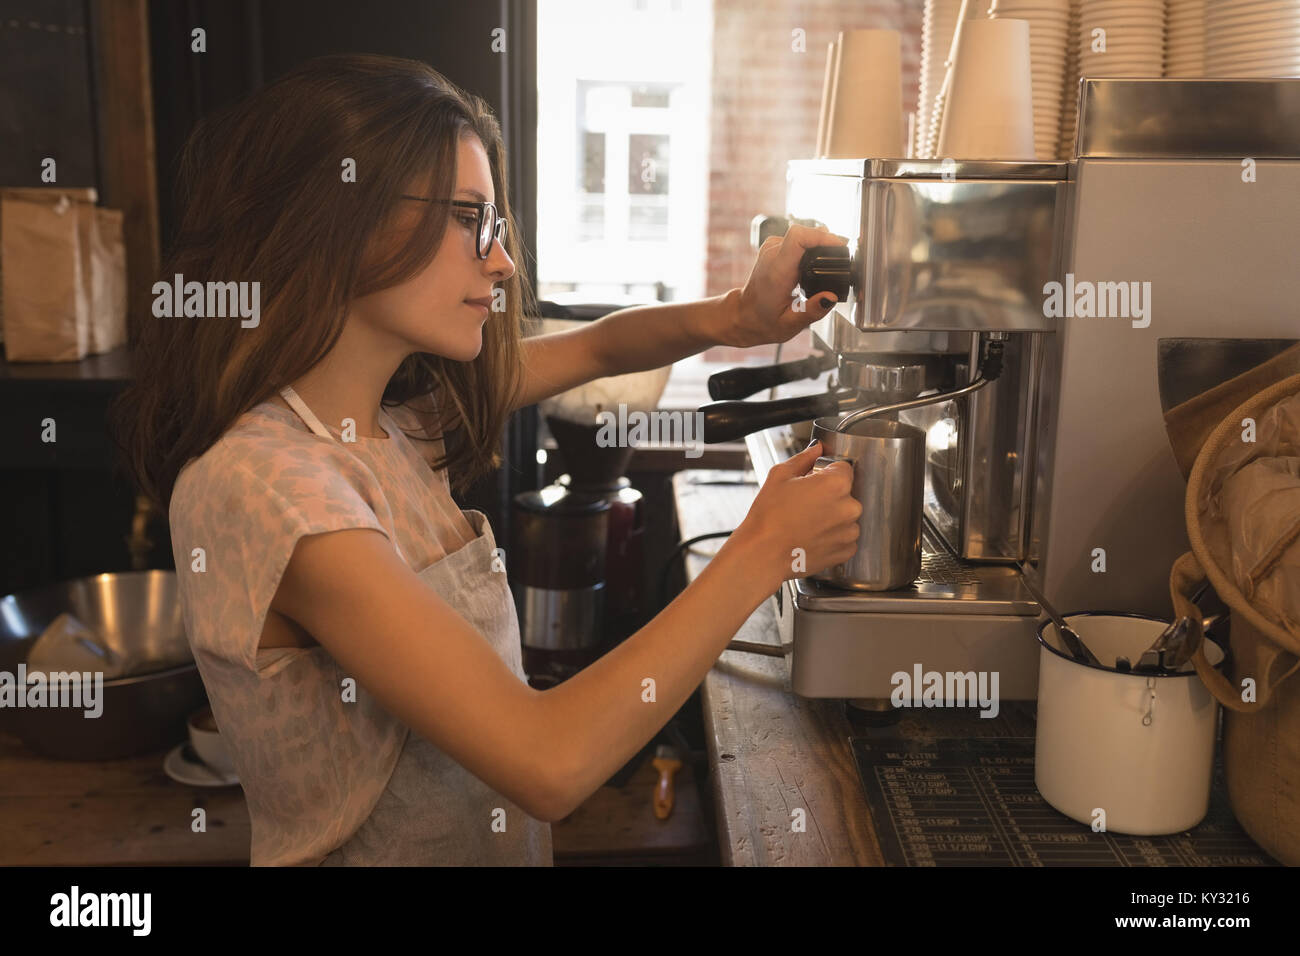 Barista steaming milk at the coffee machine - Stock Image